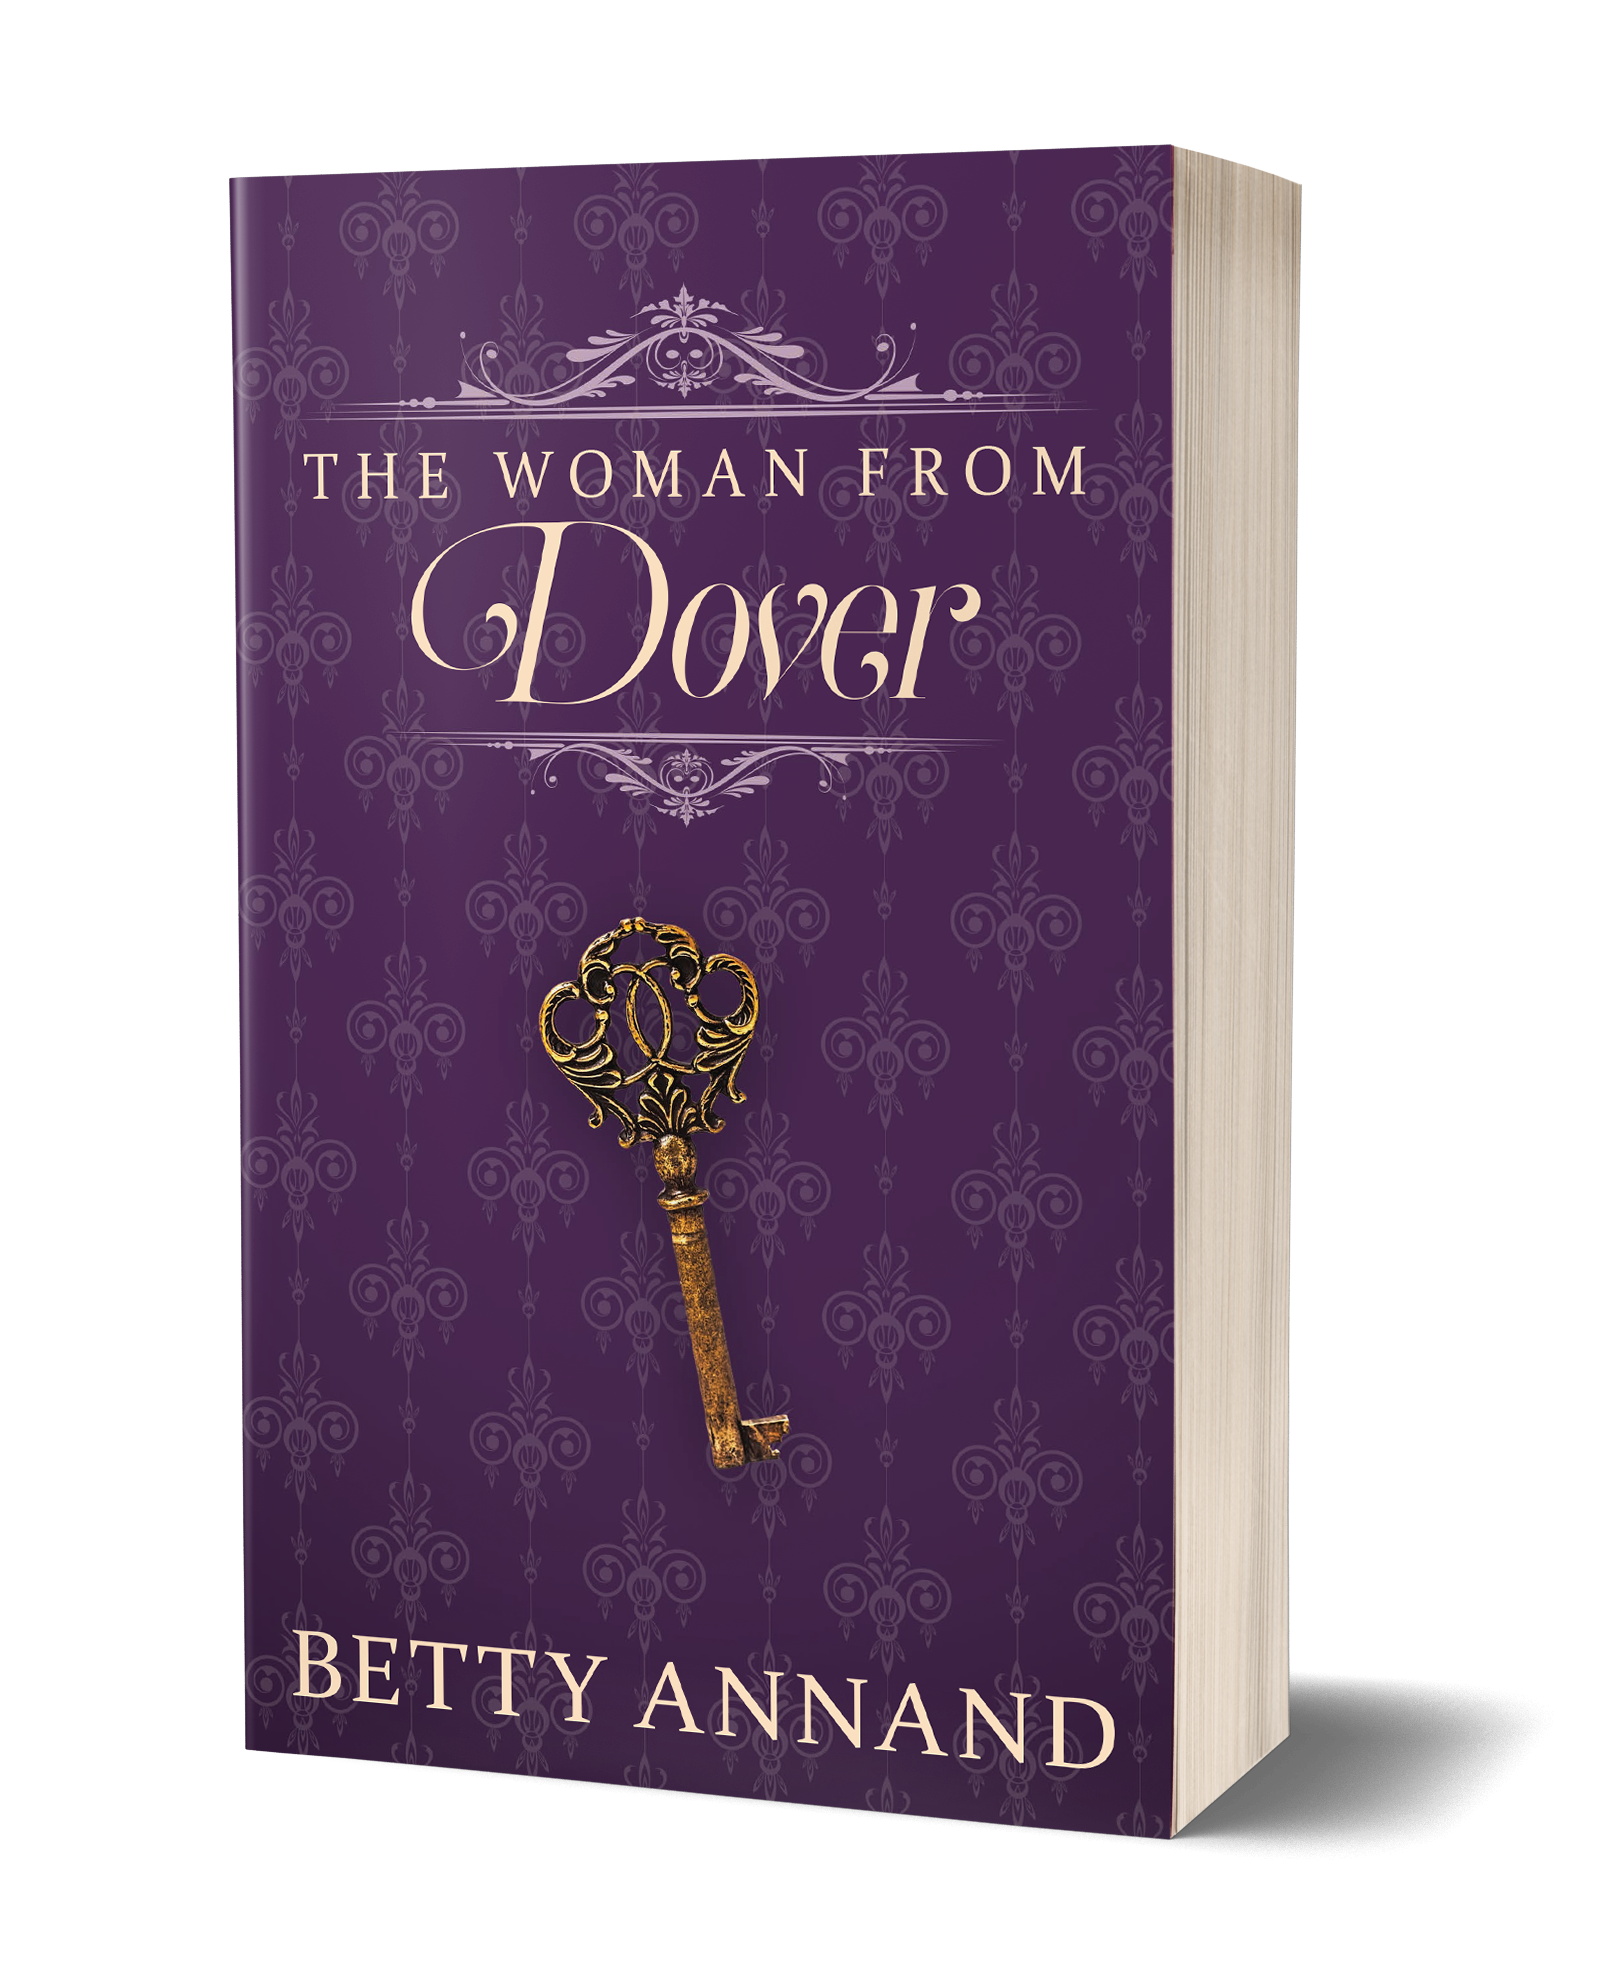 The Woman from Dover book cover, purple background with an old key